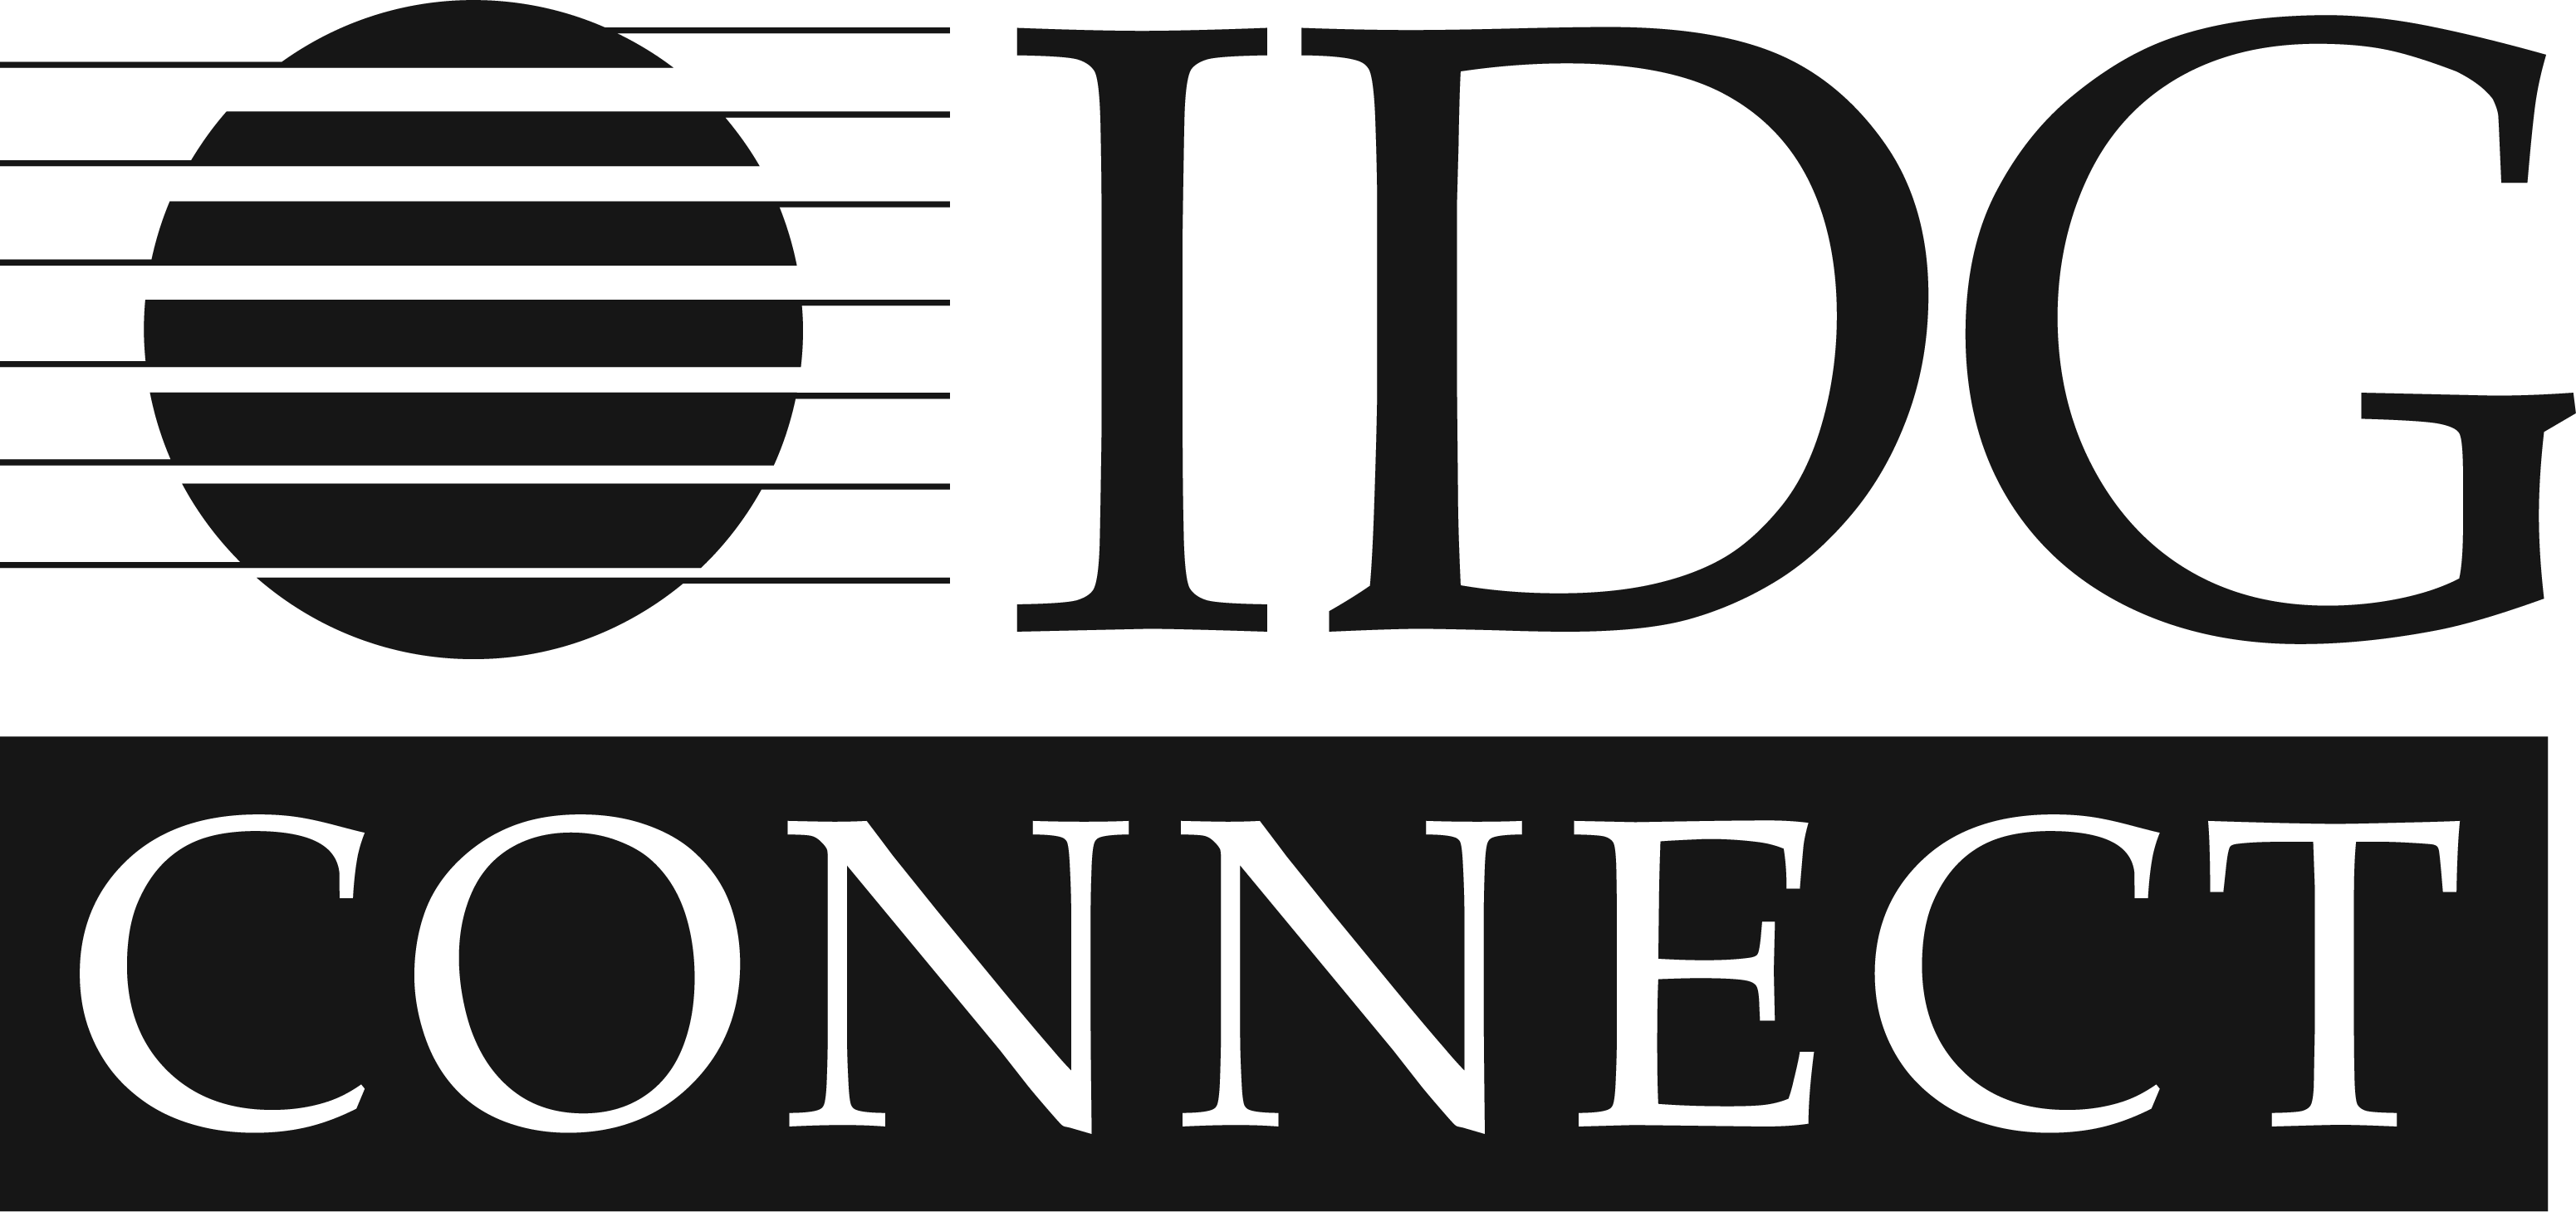 idg-connect-logo.png